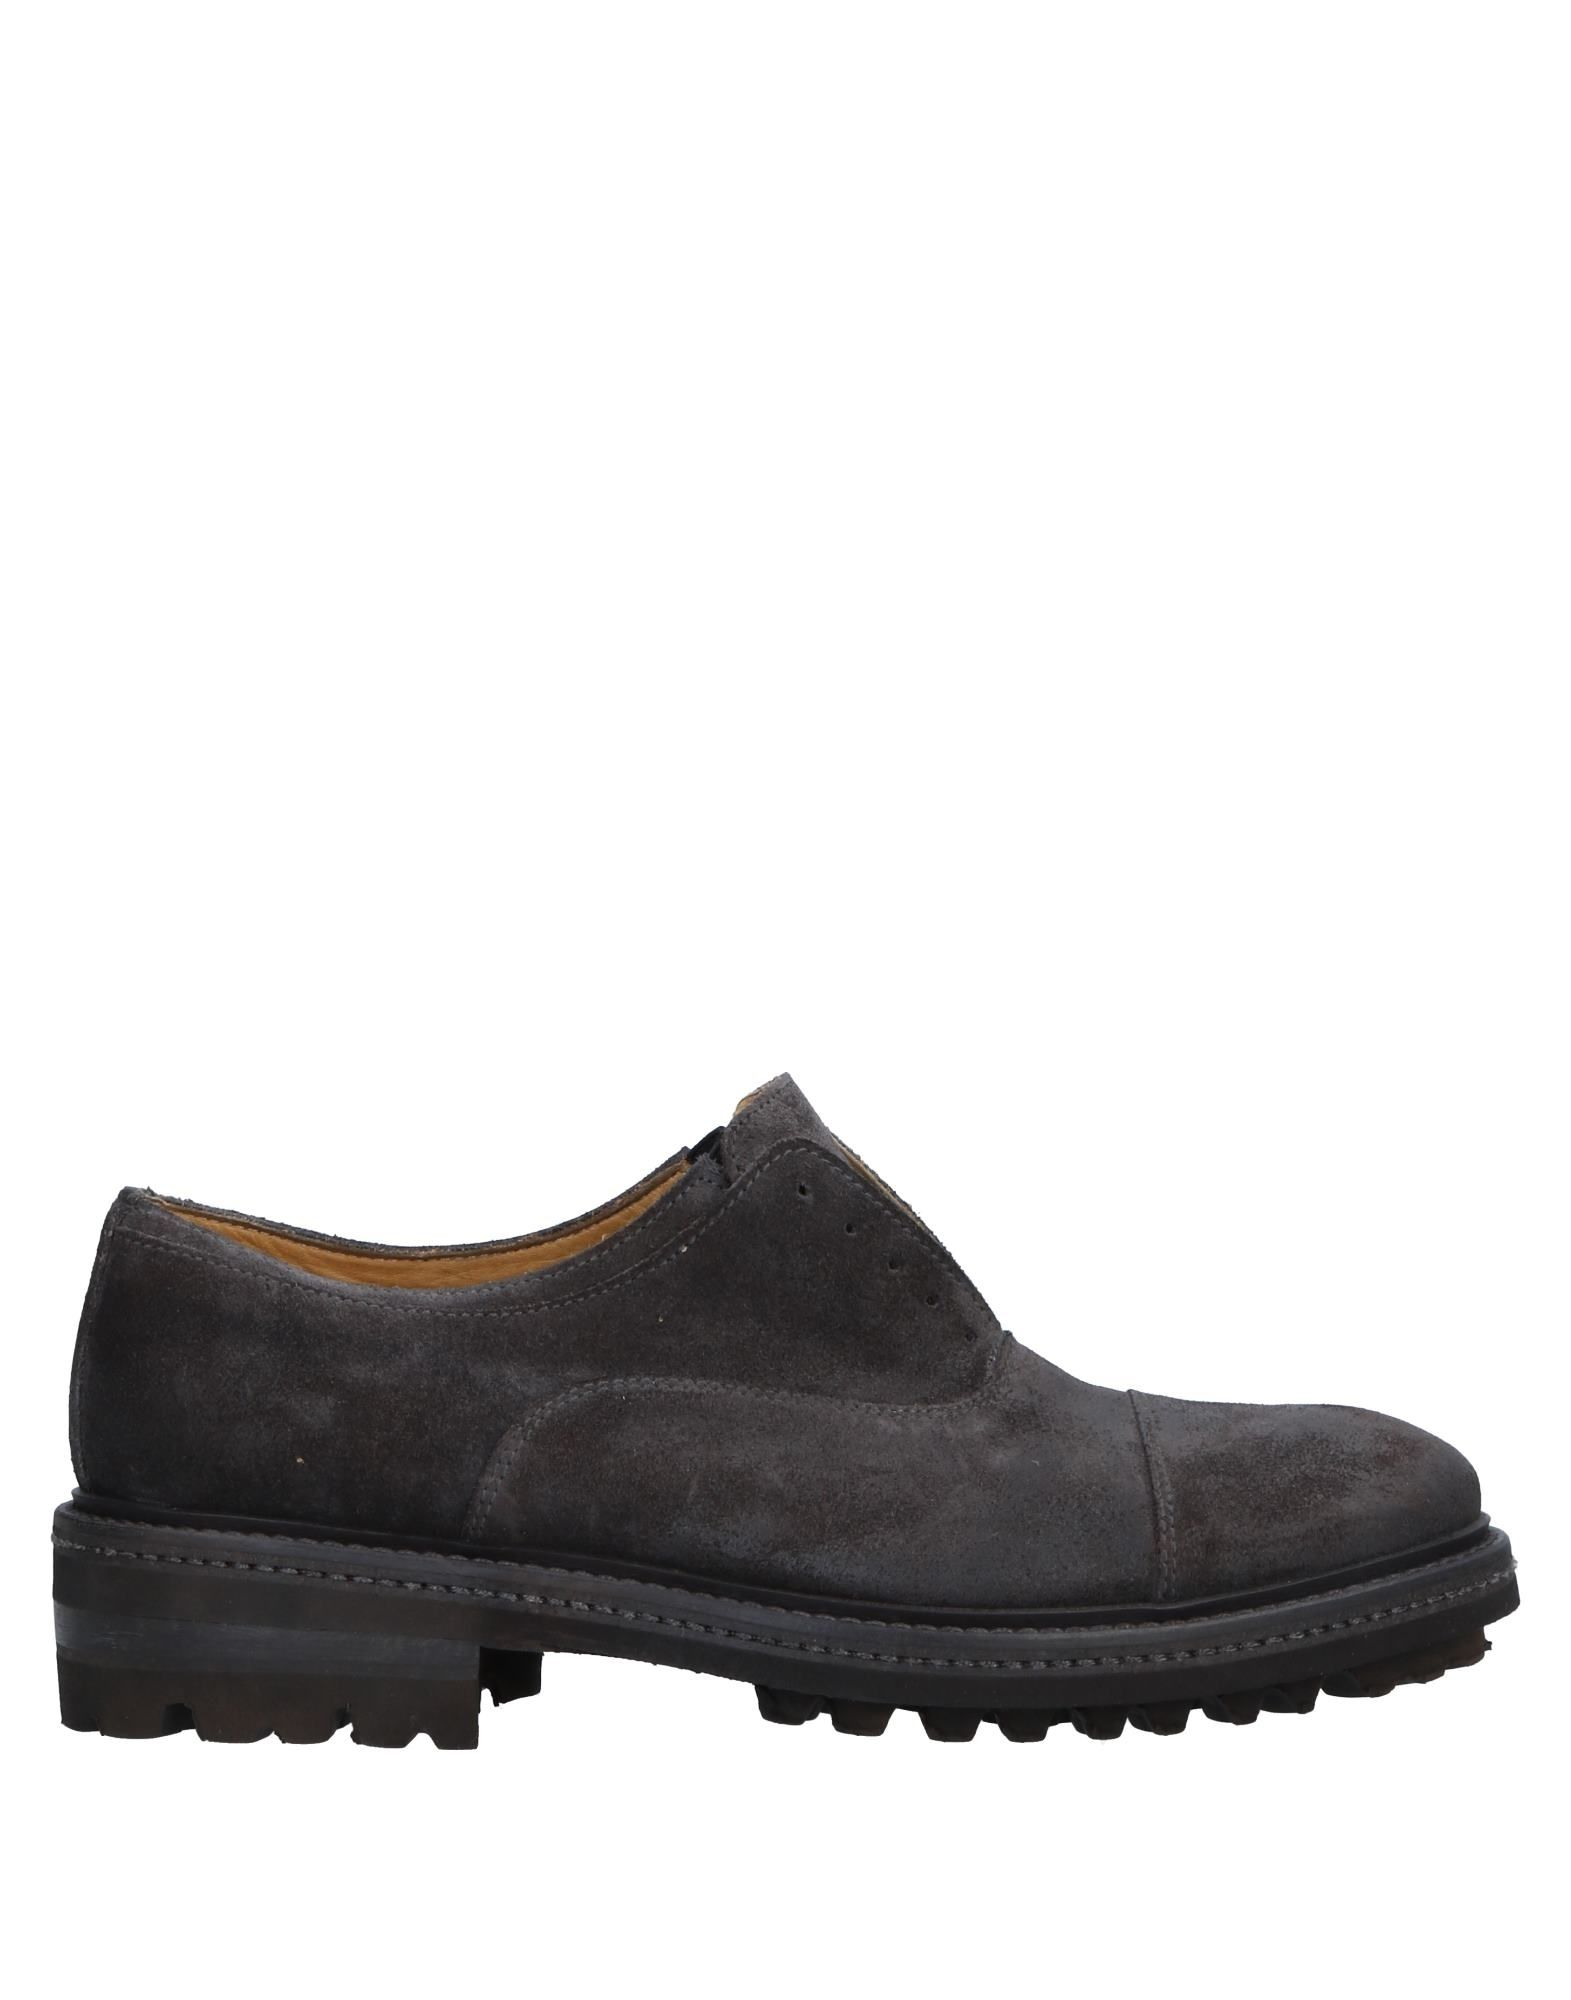 Seboy's Loafers - Australia Men Seboy's Loafers online on  Australia - - 11544466QE 3d2239